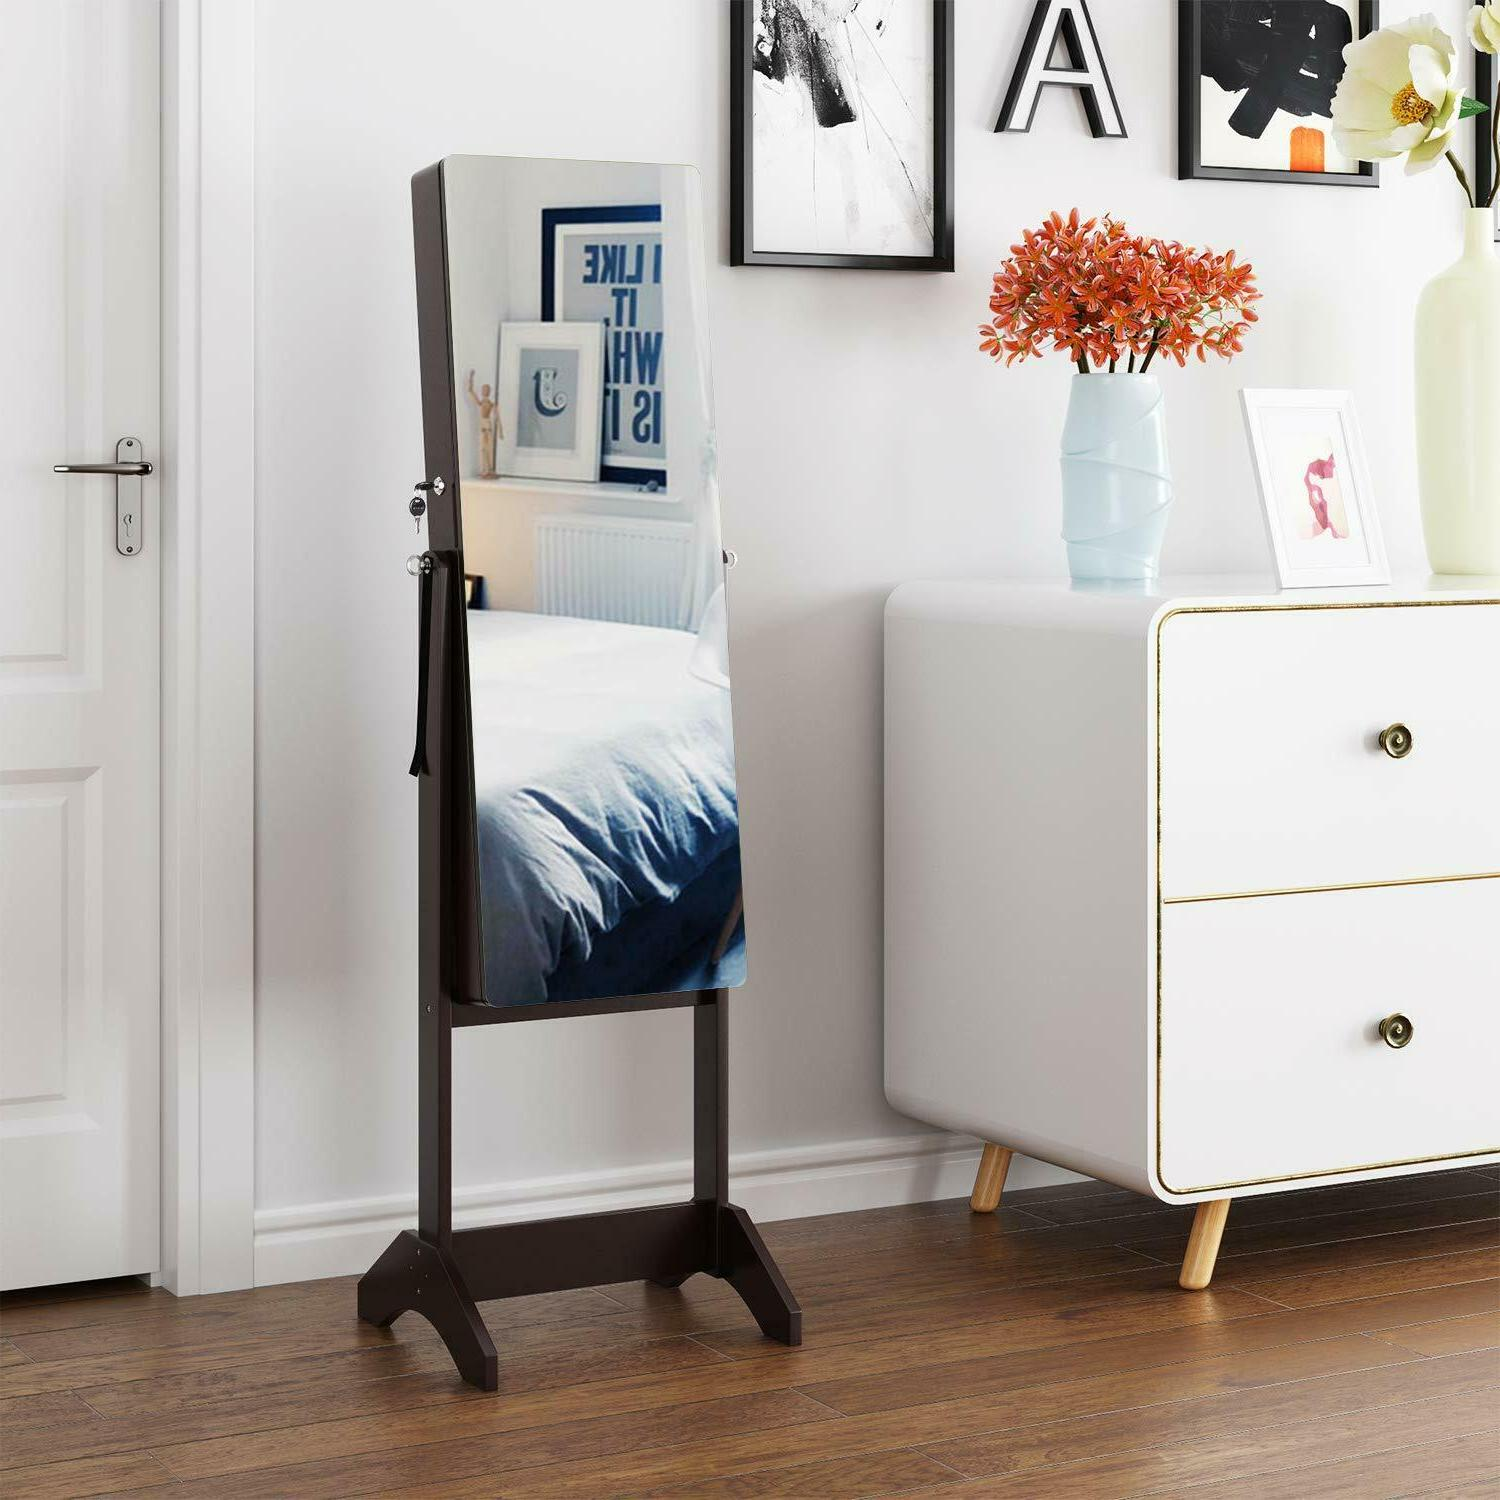 Lockable Mirrored Jewelry Armoire Box Stand